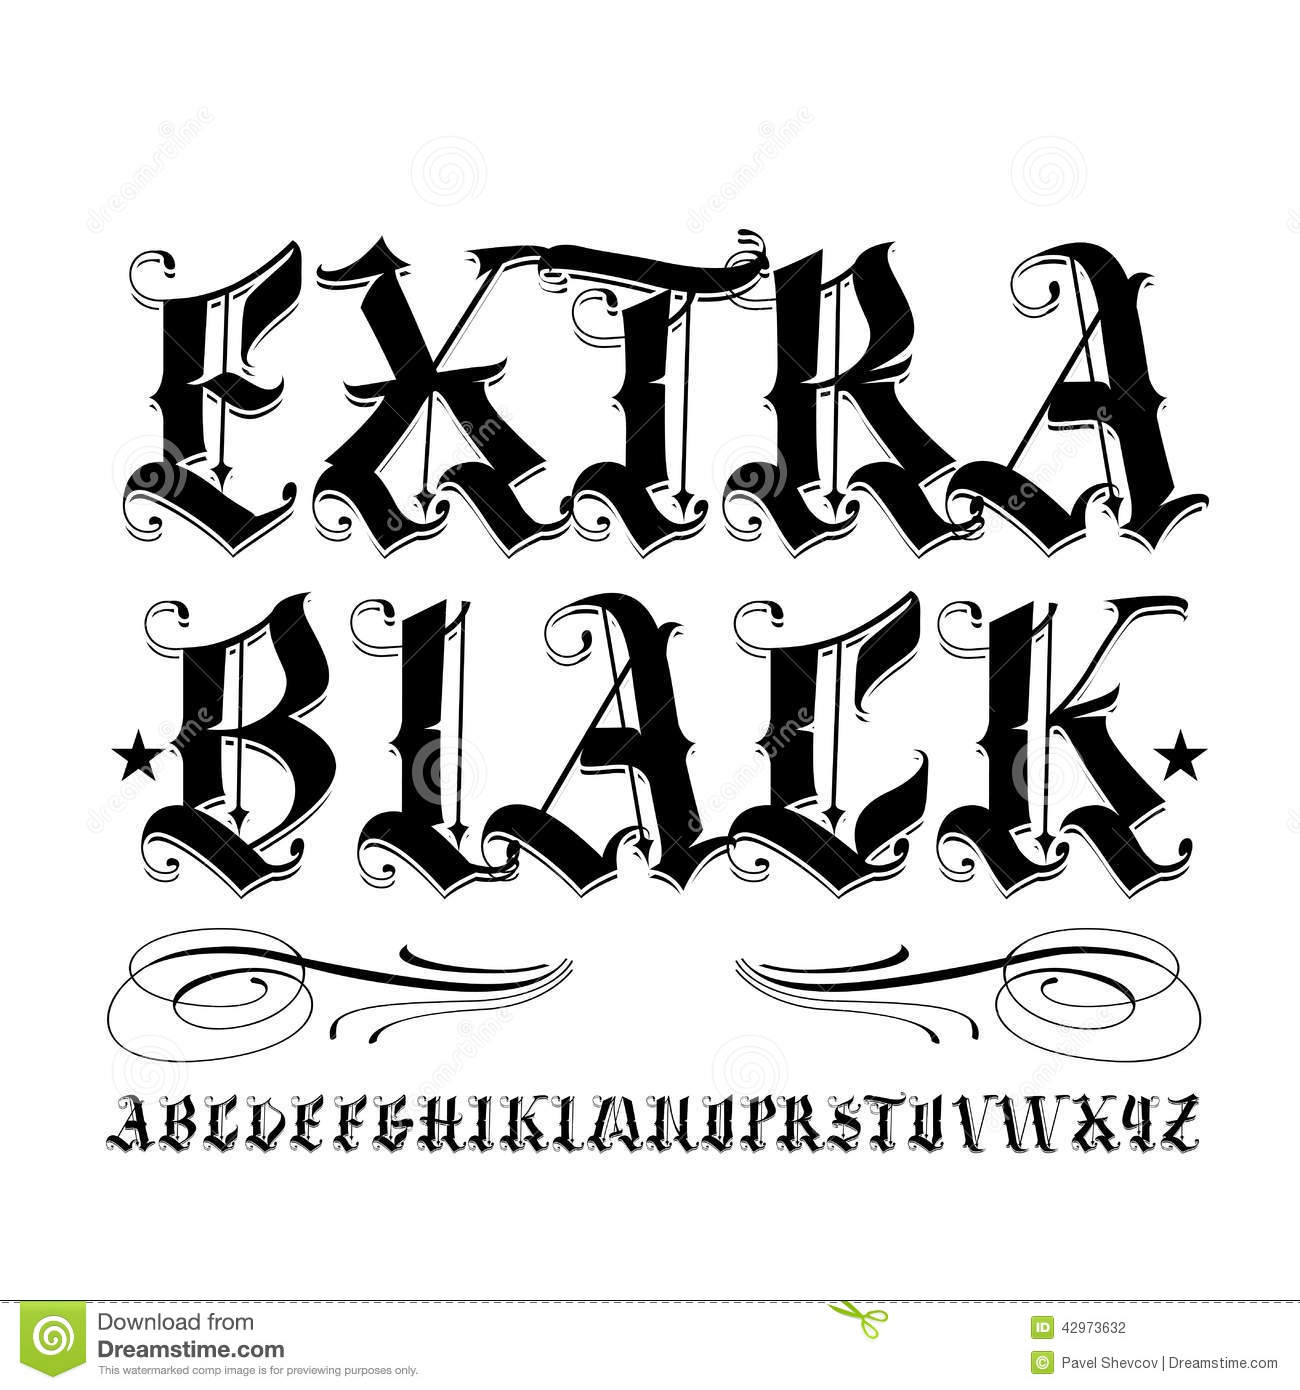 Extra Black Lettering Stock Vector Illustration Of Graphic 45143418